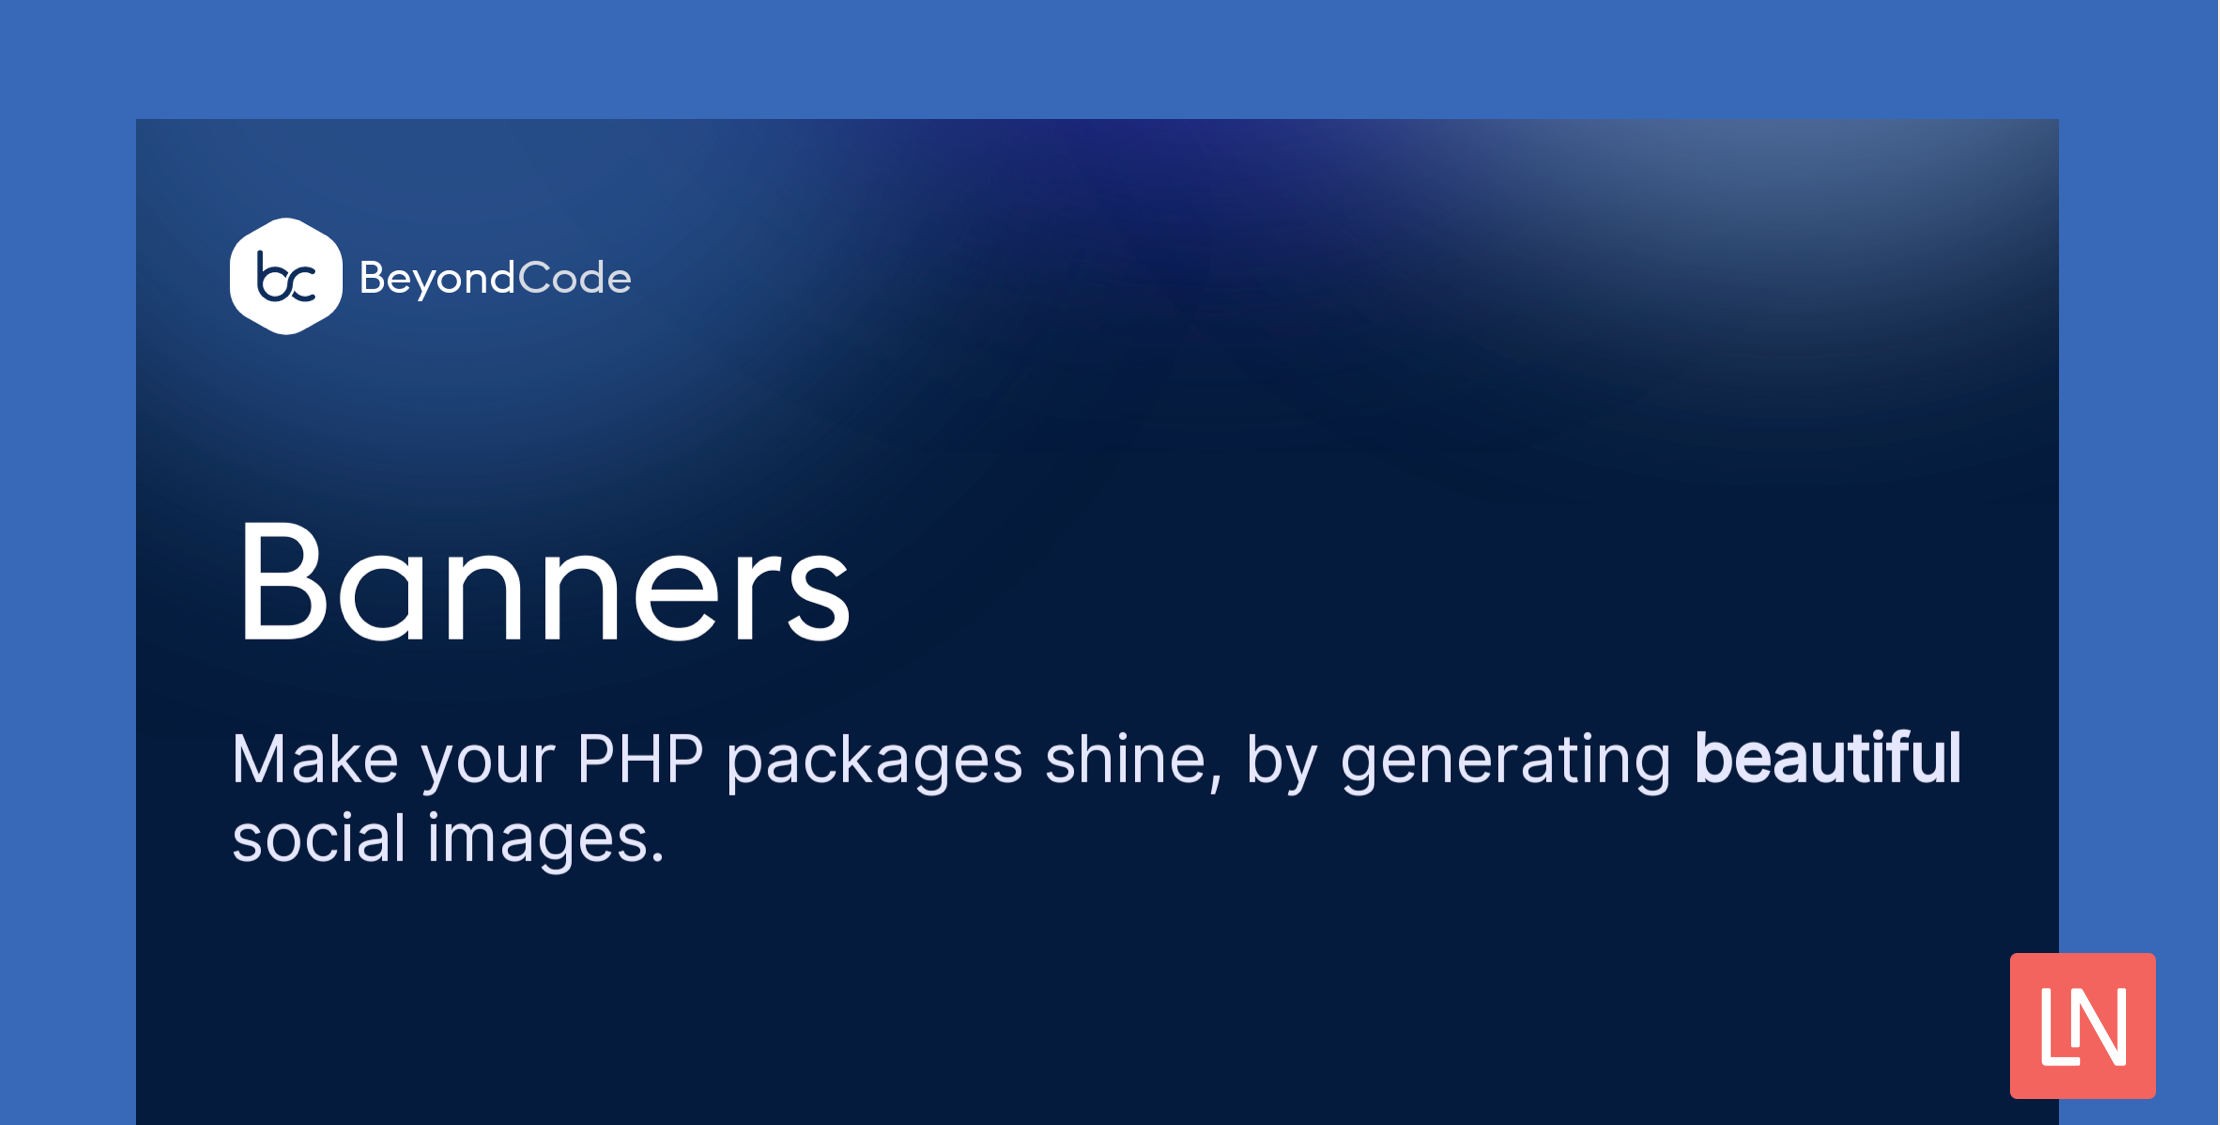 beyondcode-banners-featured.png